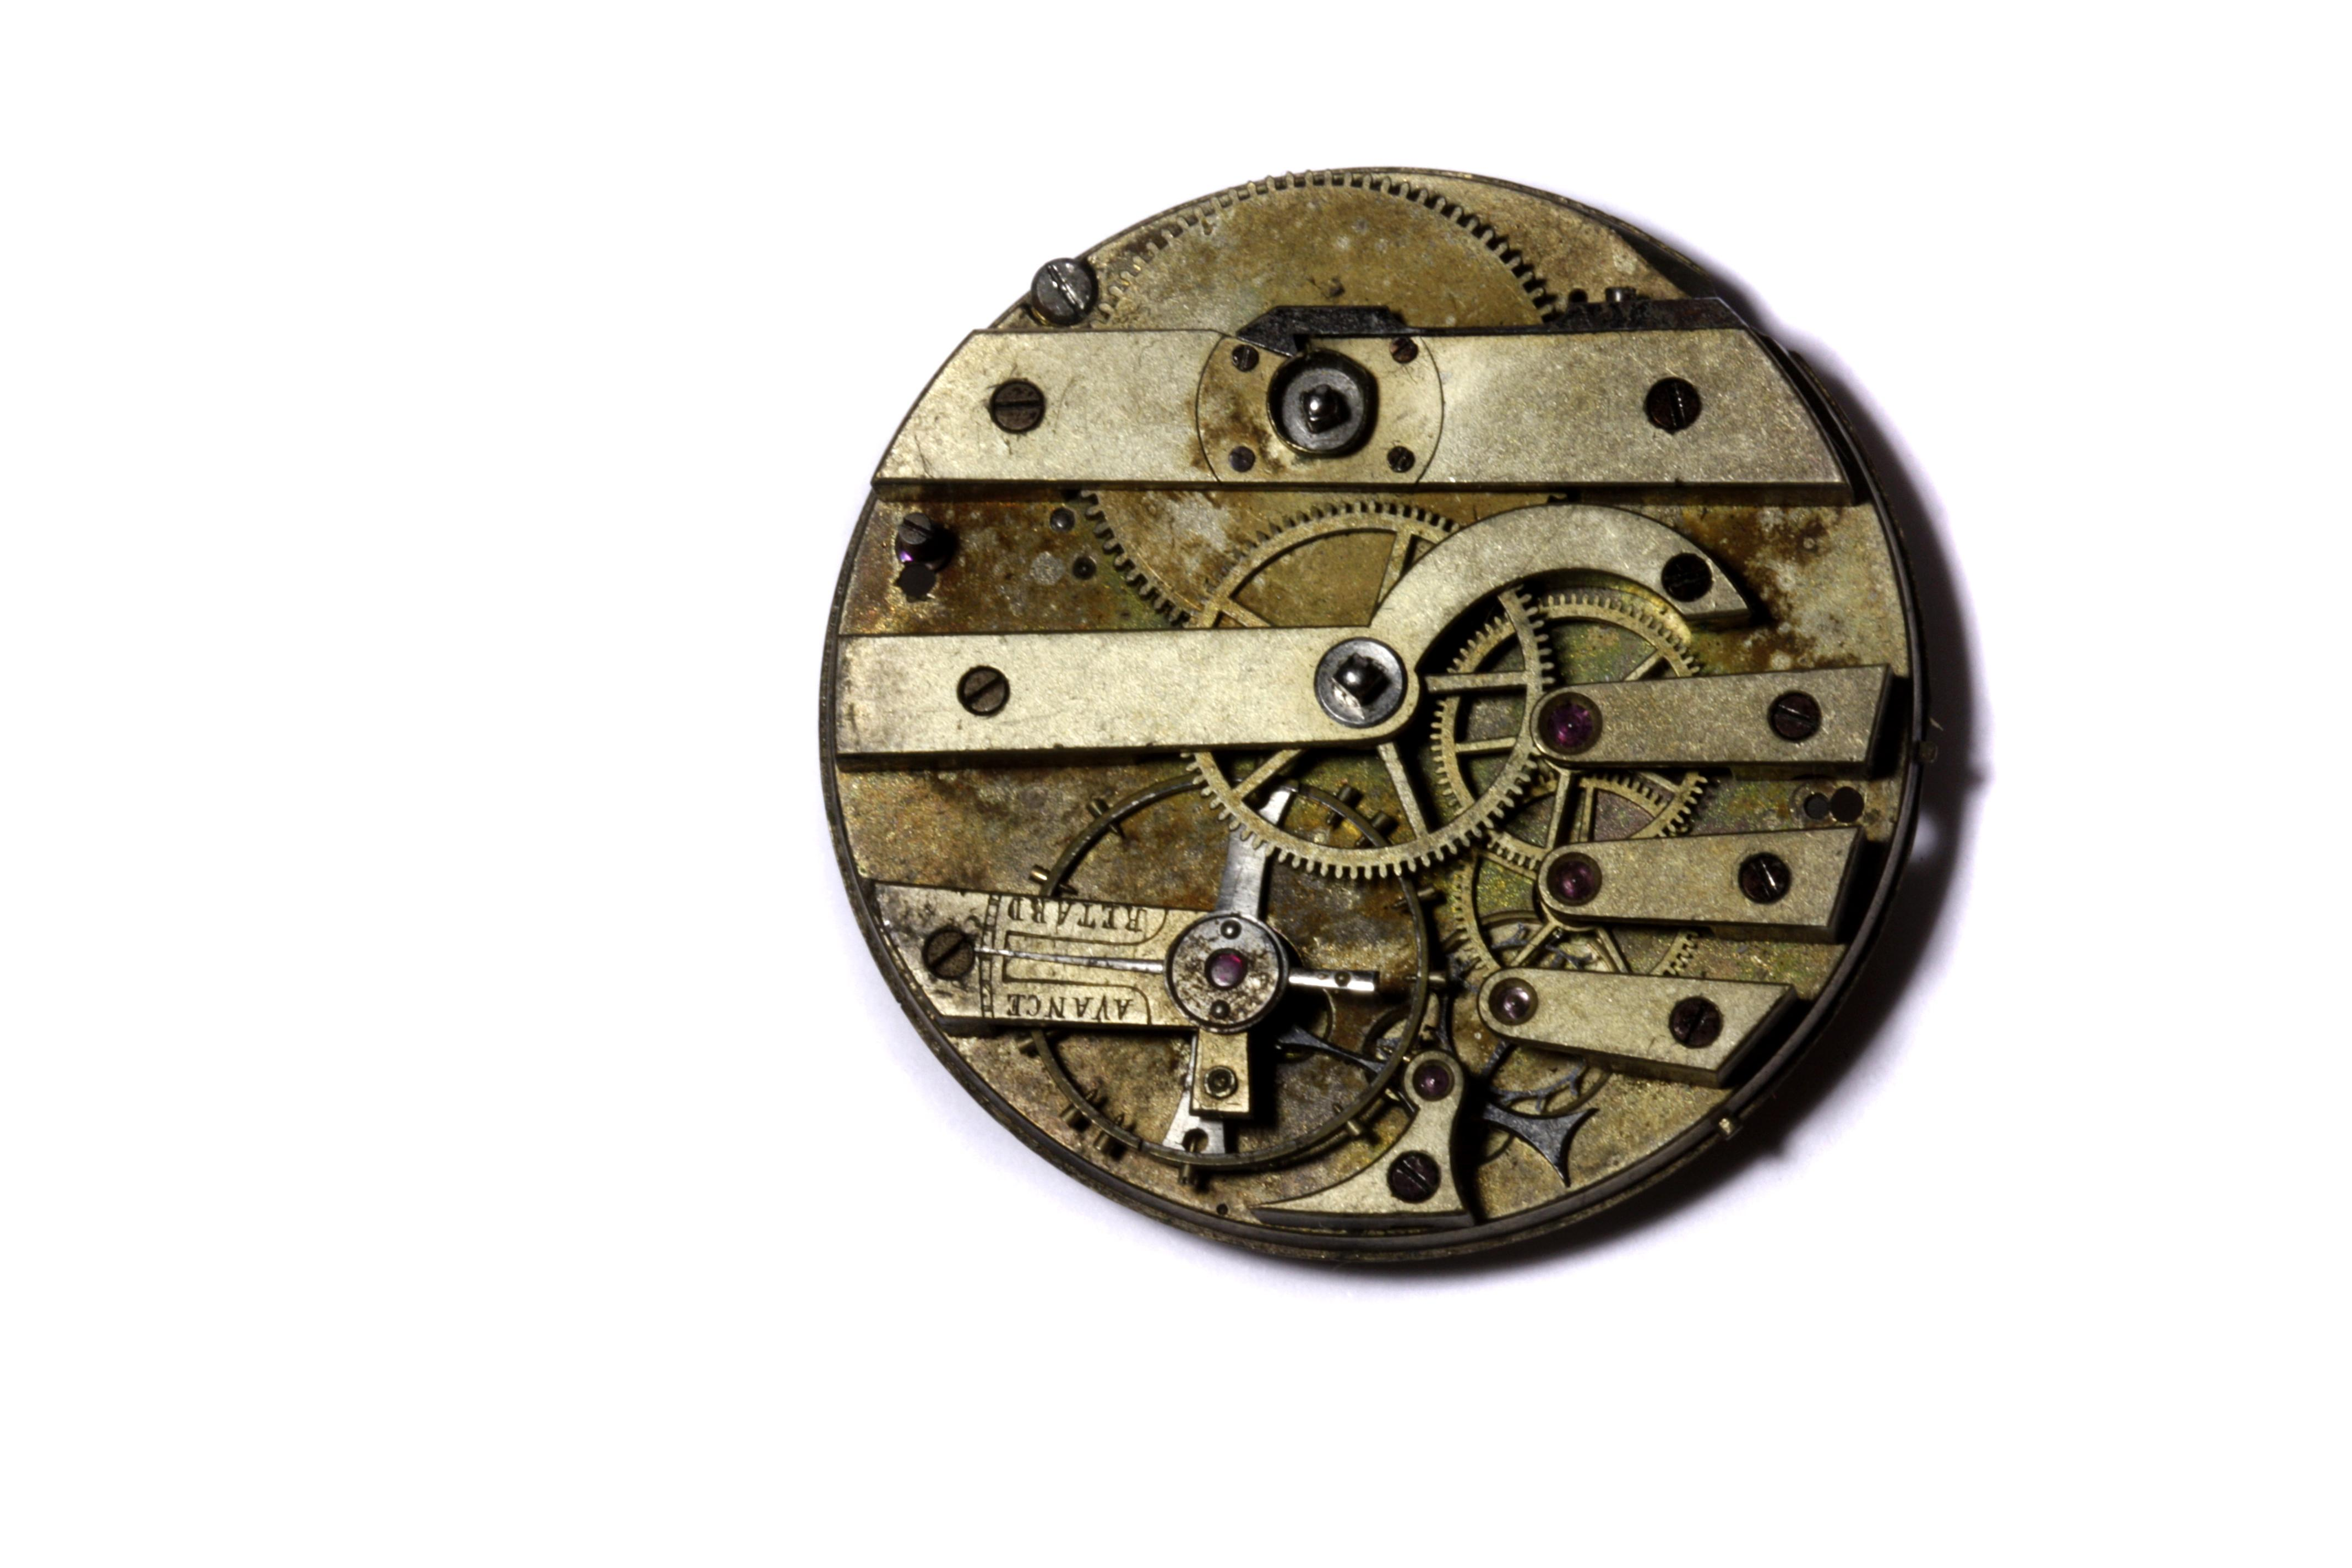 Steampunk_pocket_watch_gear_1_by_CatherinetteRings.jpg